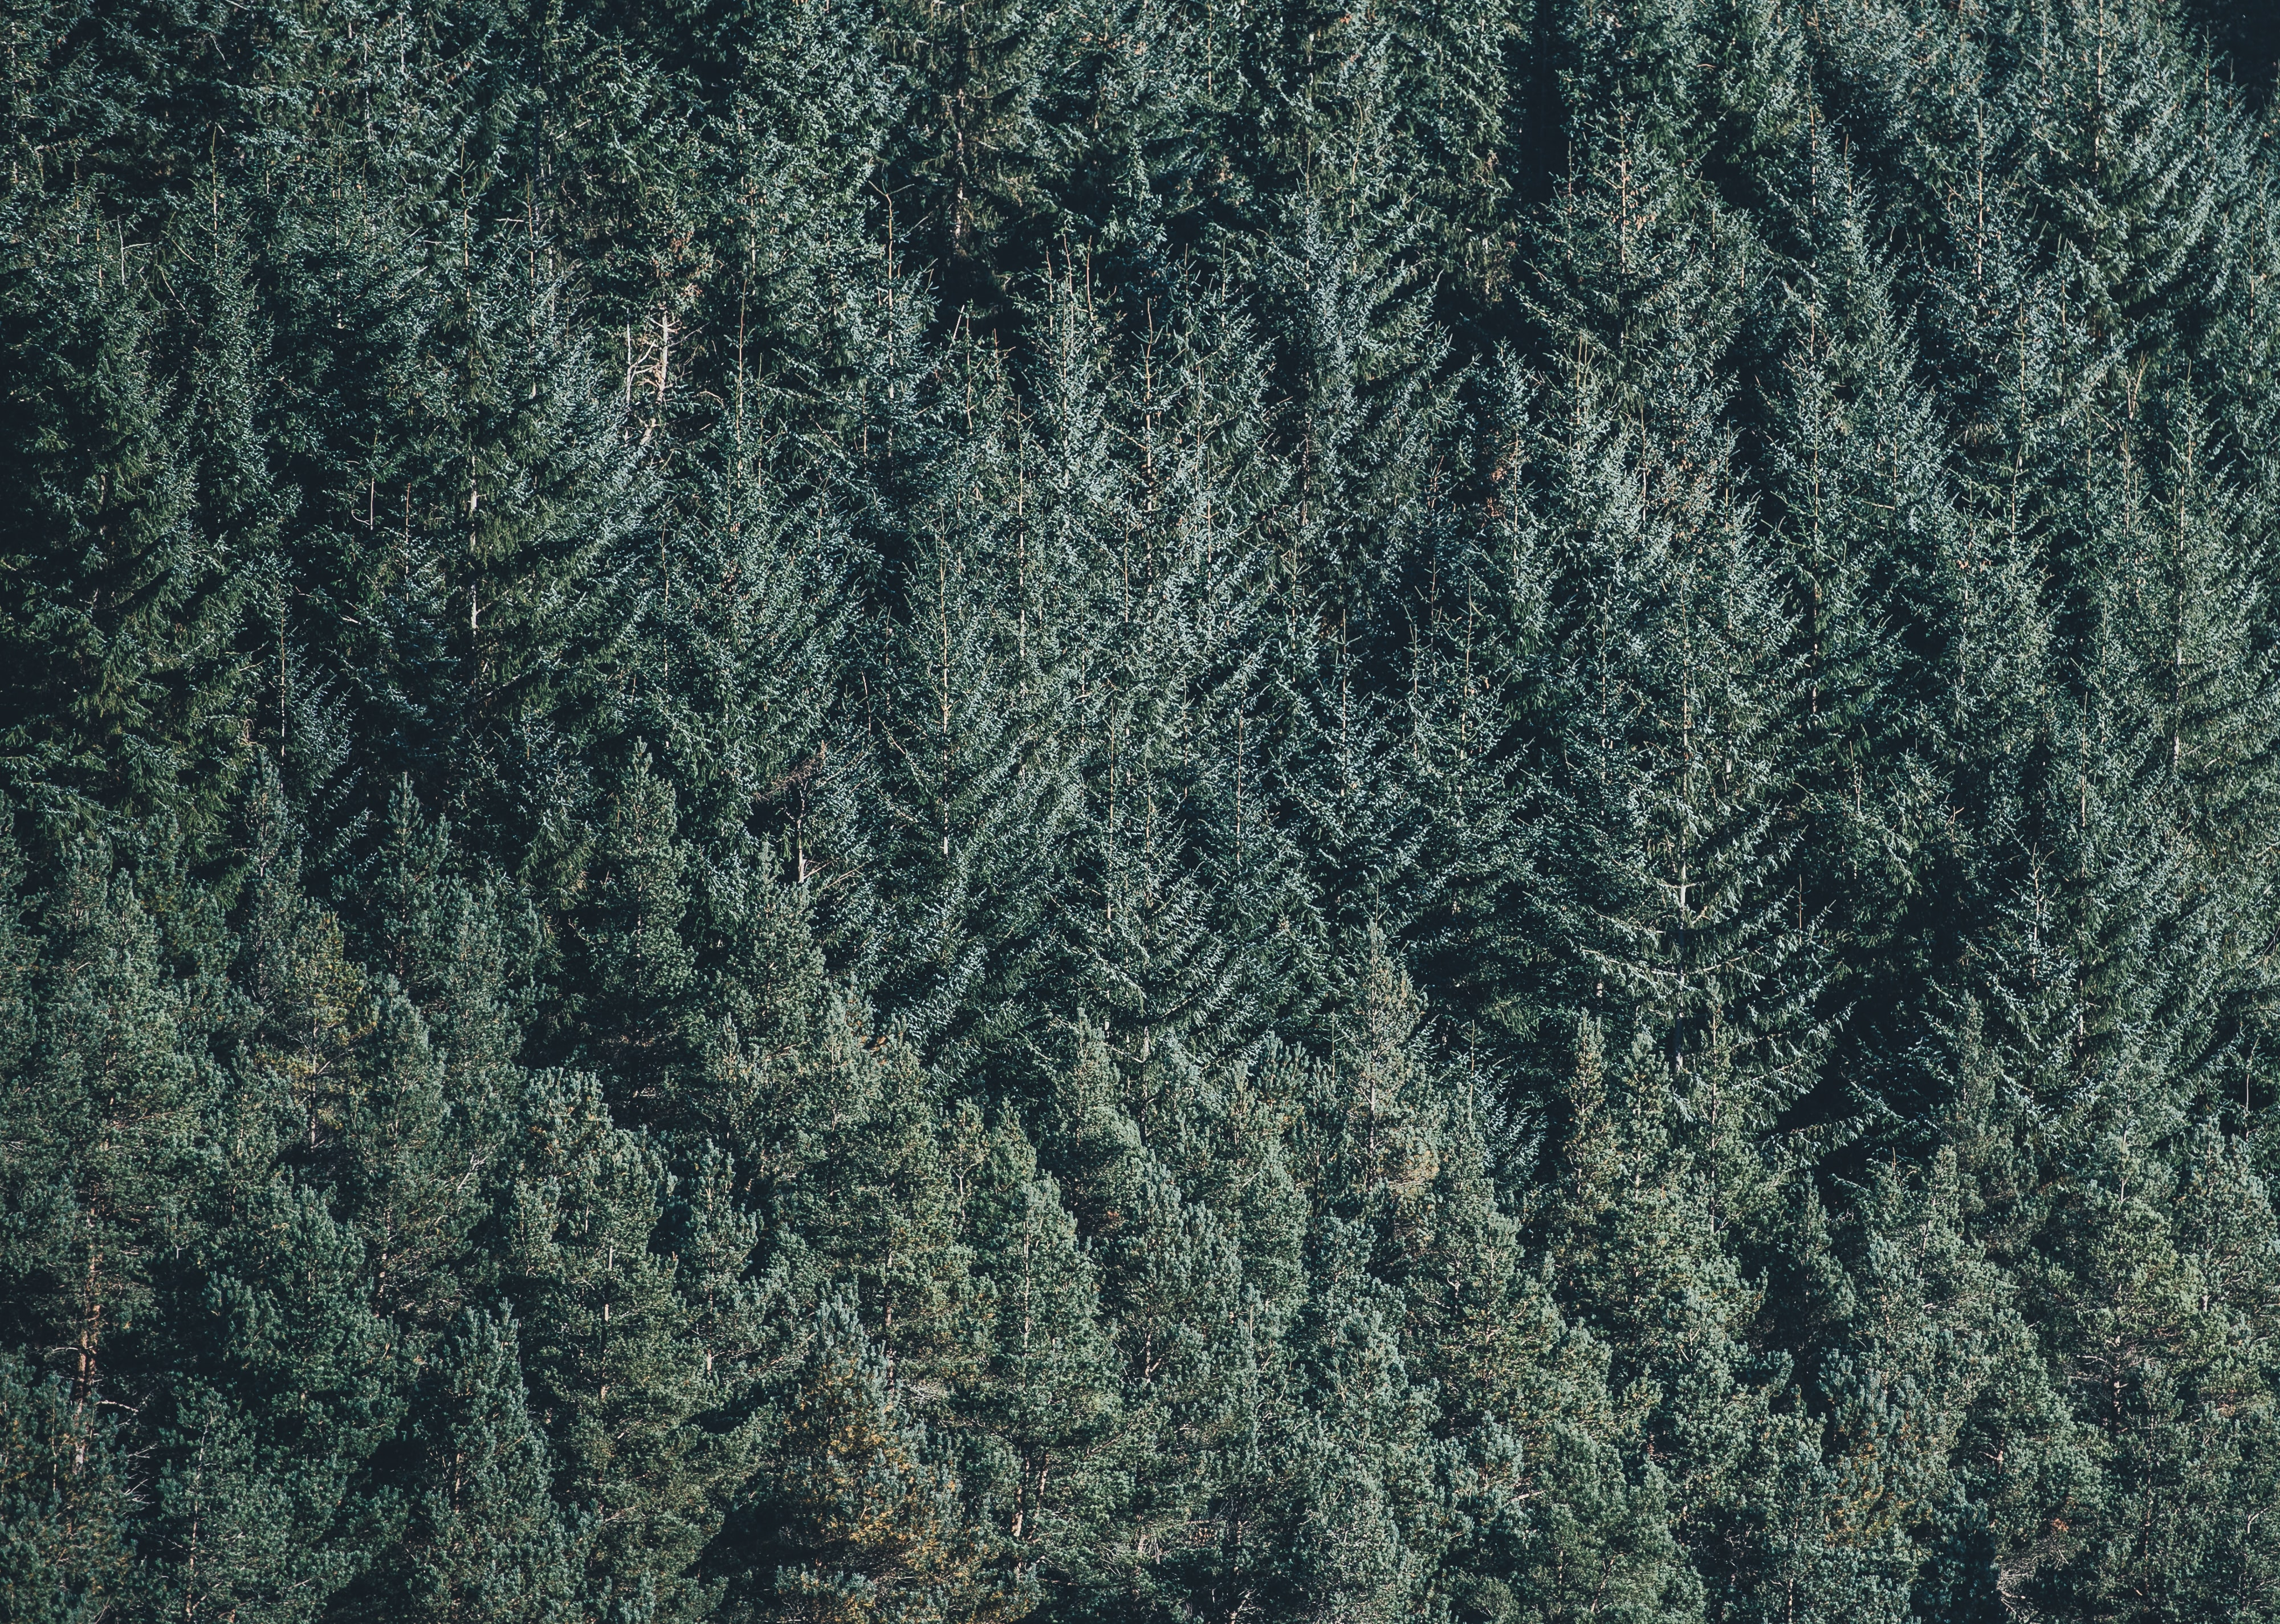 A drone shot of tall pine trees